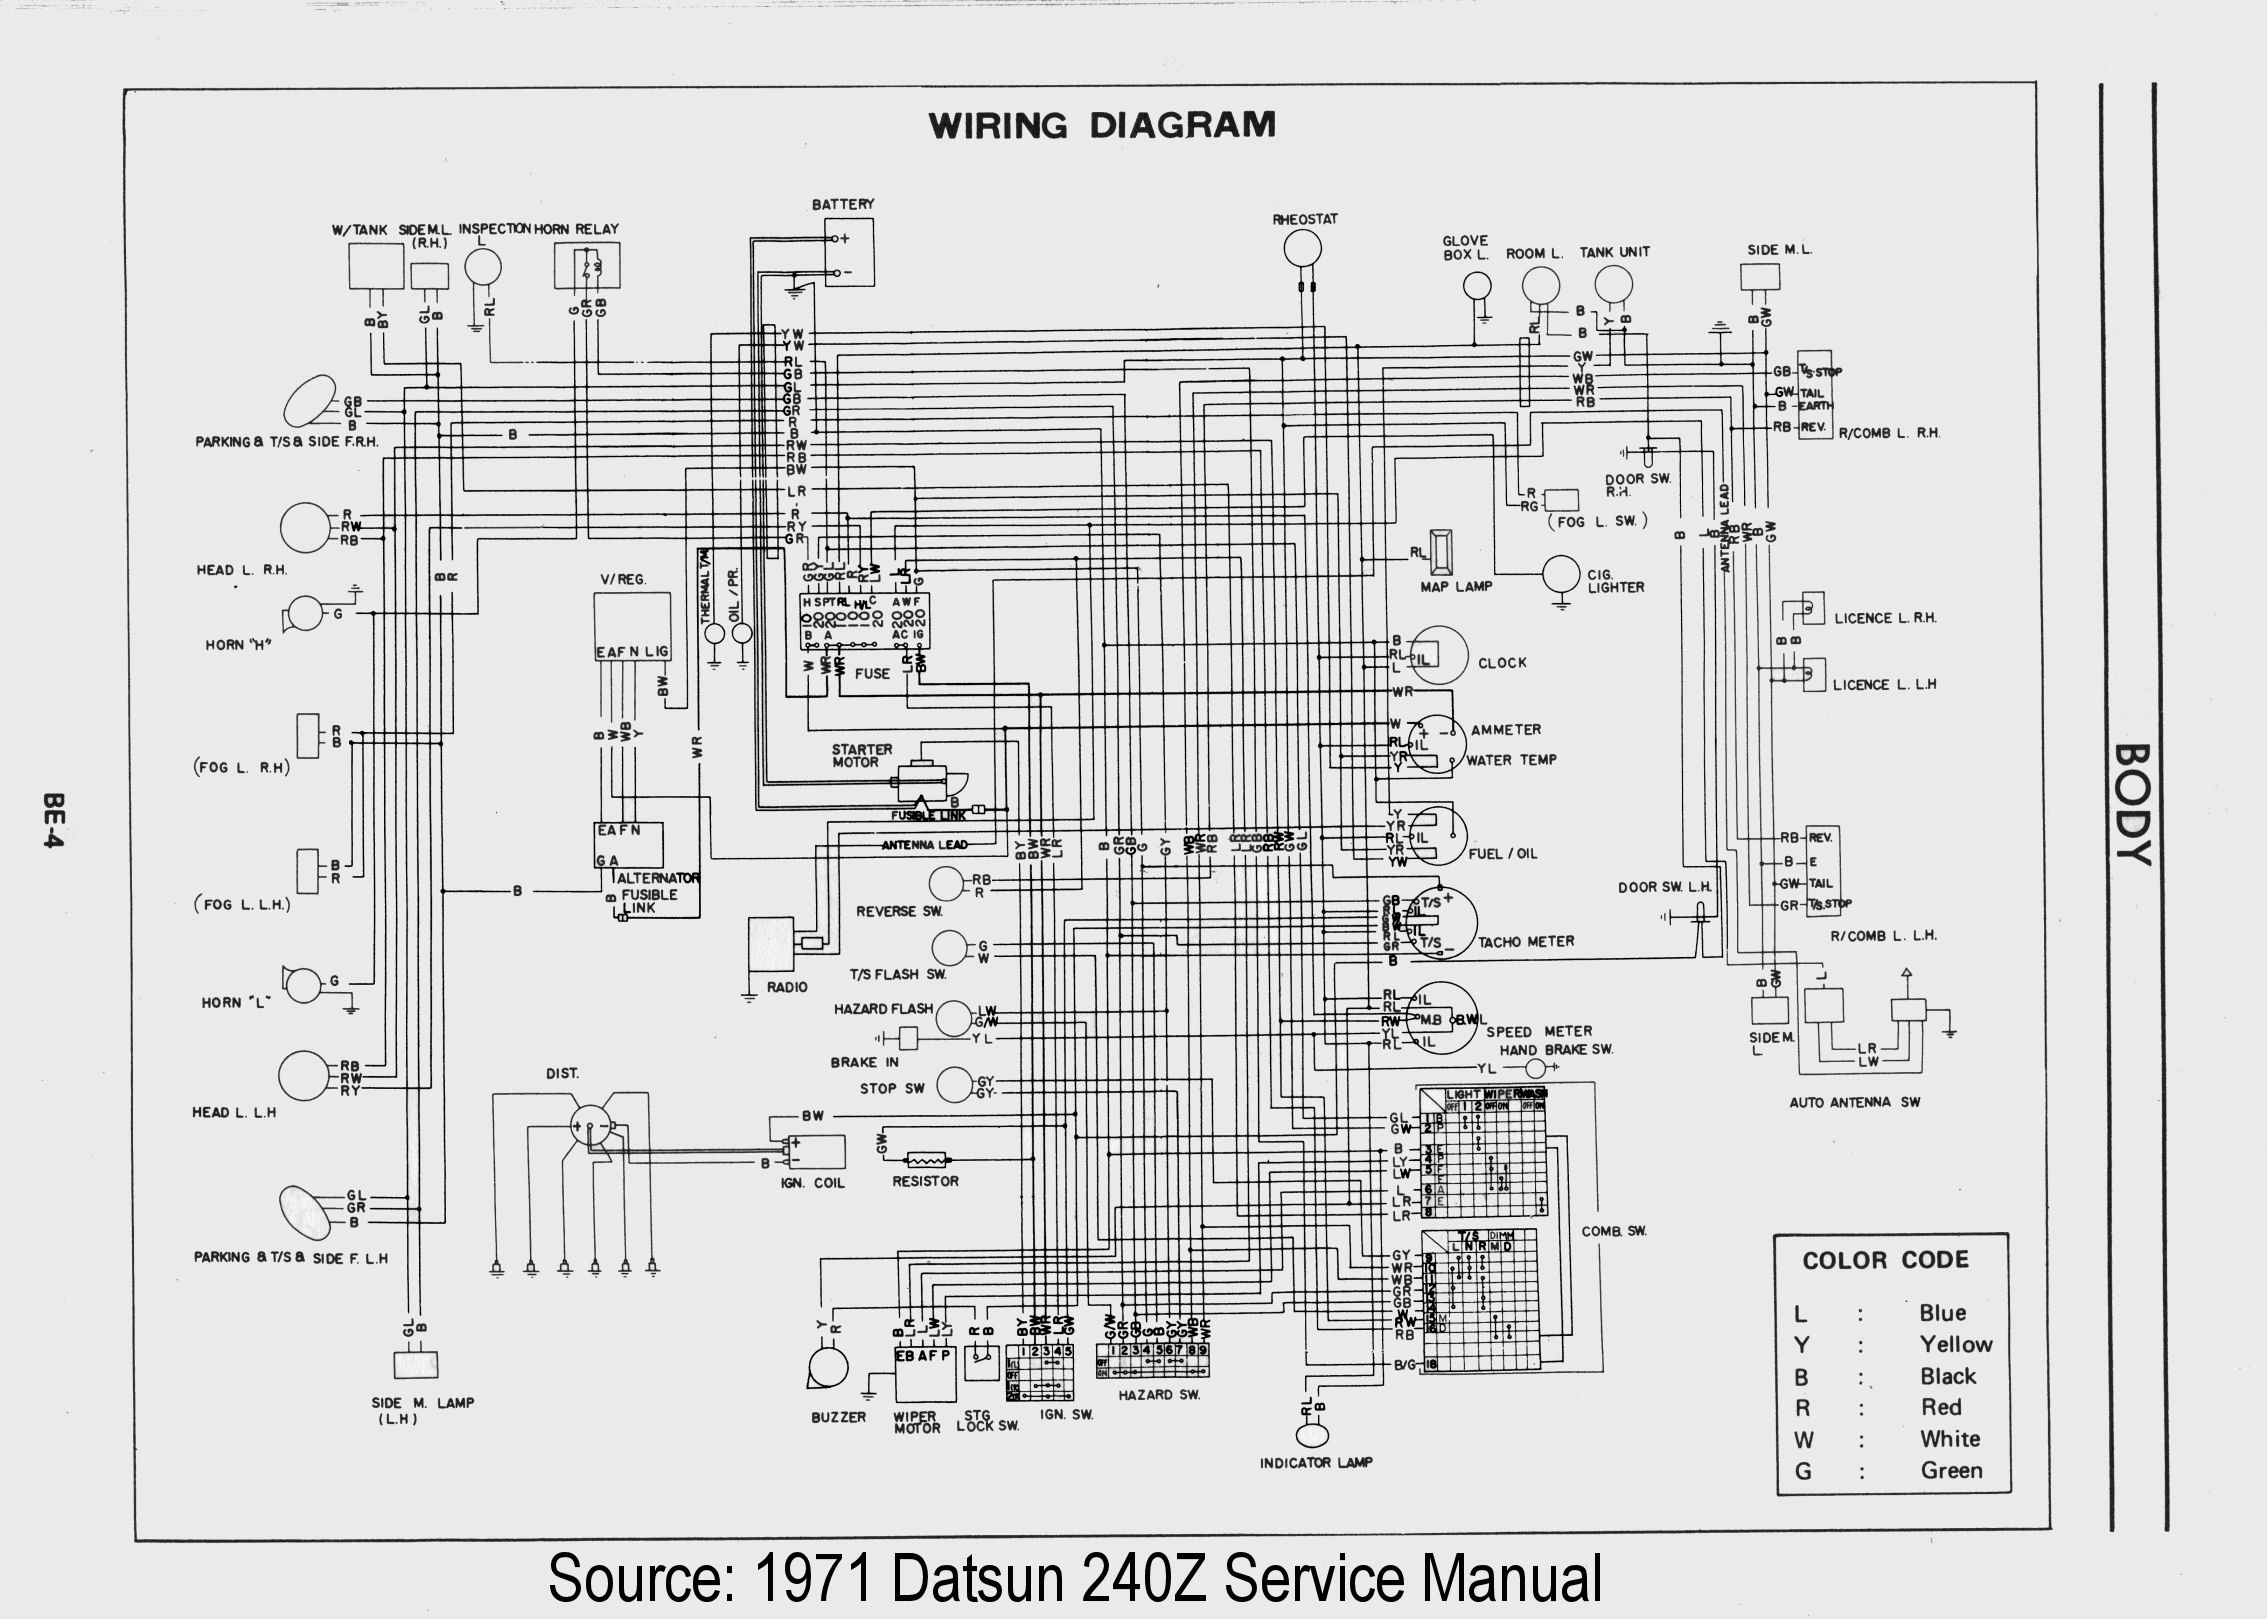 Wiring Diagram HiRes 2 generic wiring troubleshooting checklist woodworkerb 1976 280z wiring diagram at bayanpartner.co